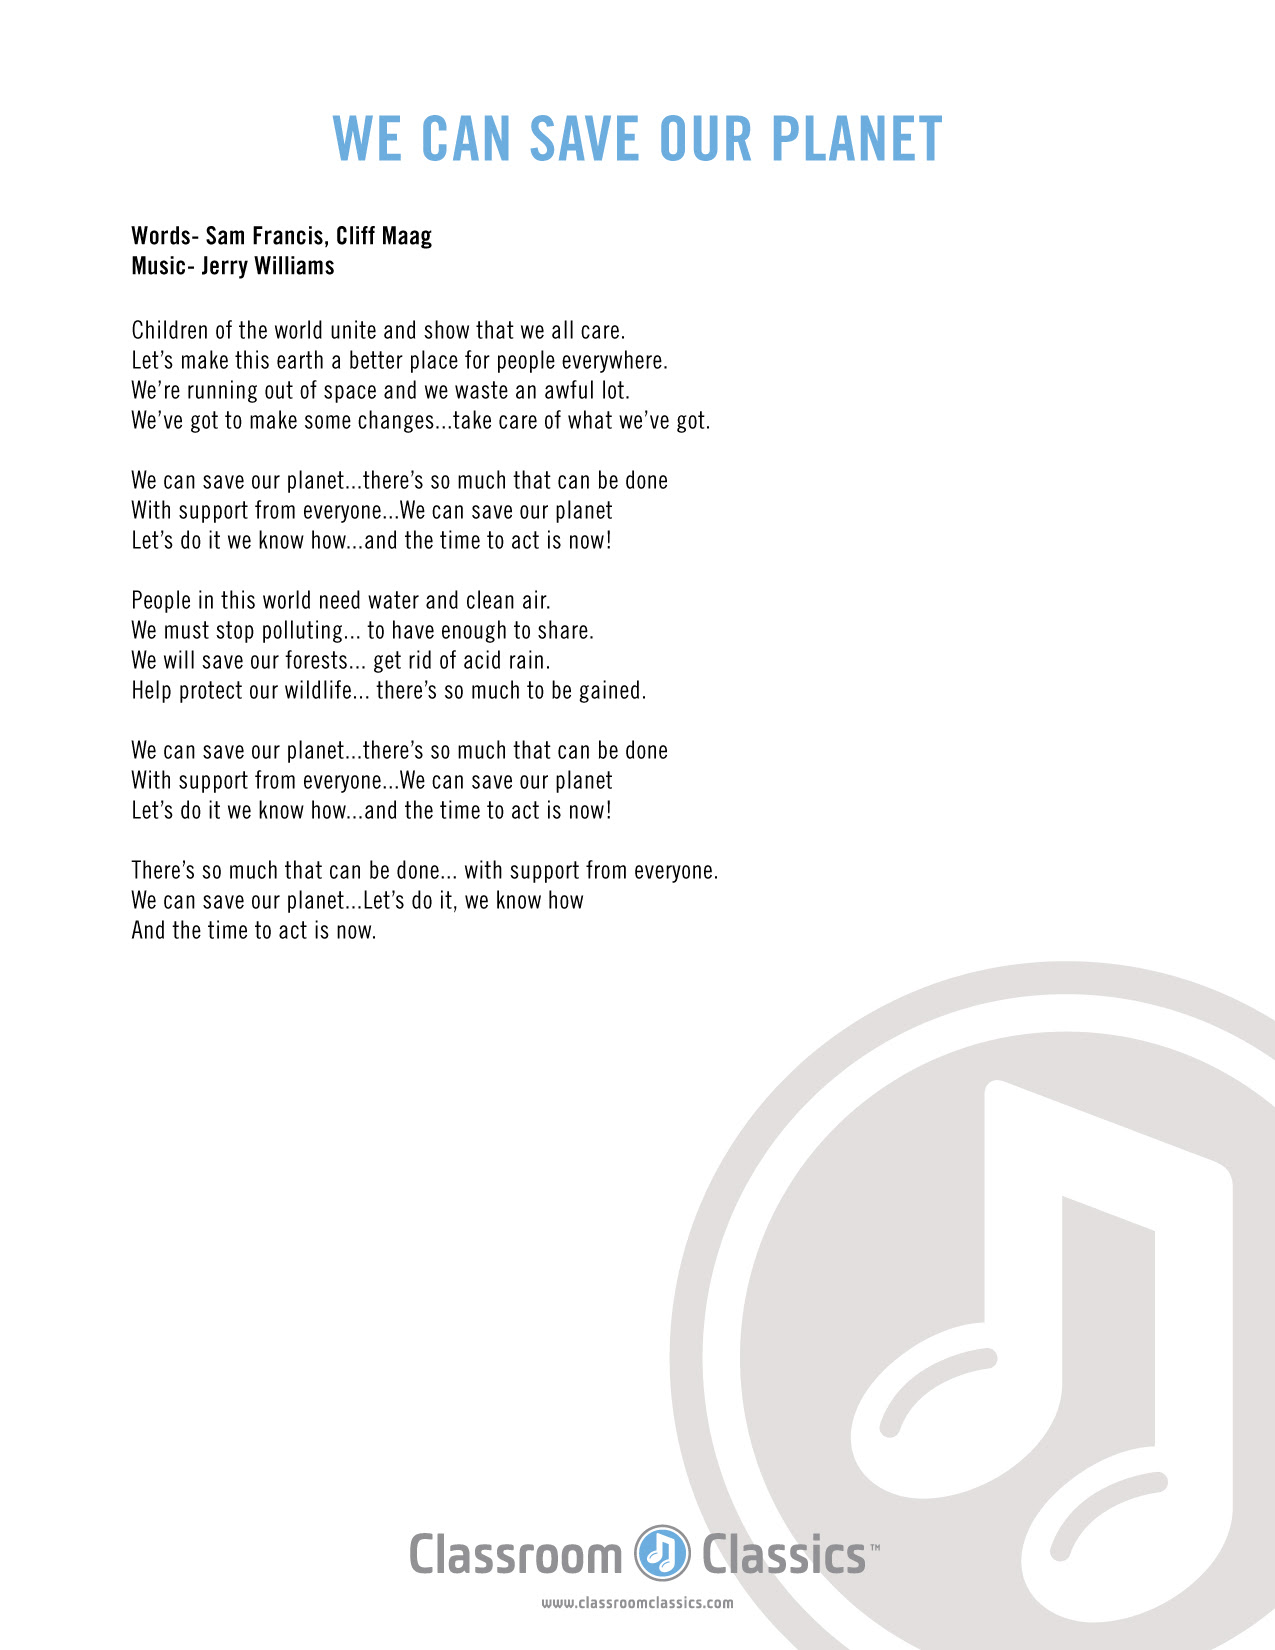 Earth Clean Lyrics : earth, clean, lyrics, Lyrics, Center:, Earth, Clean, Words